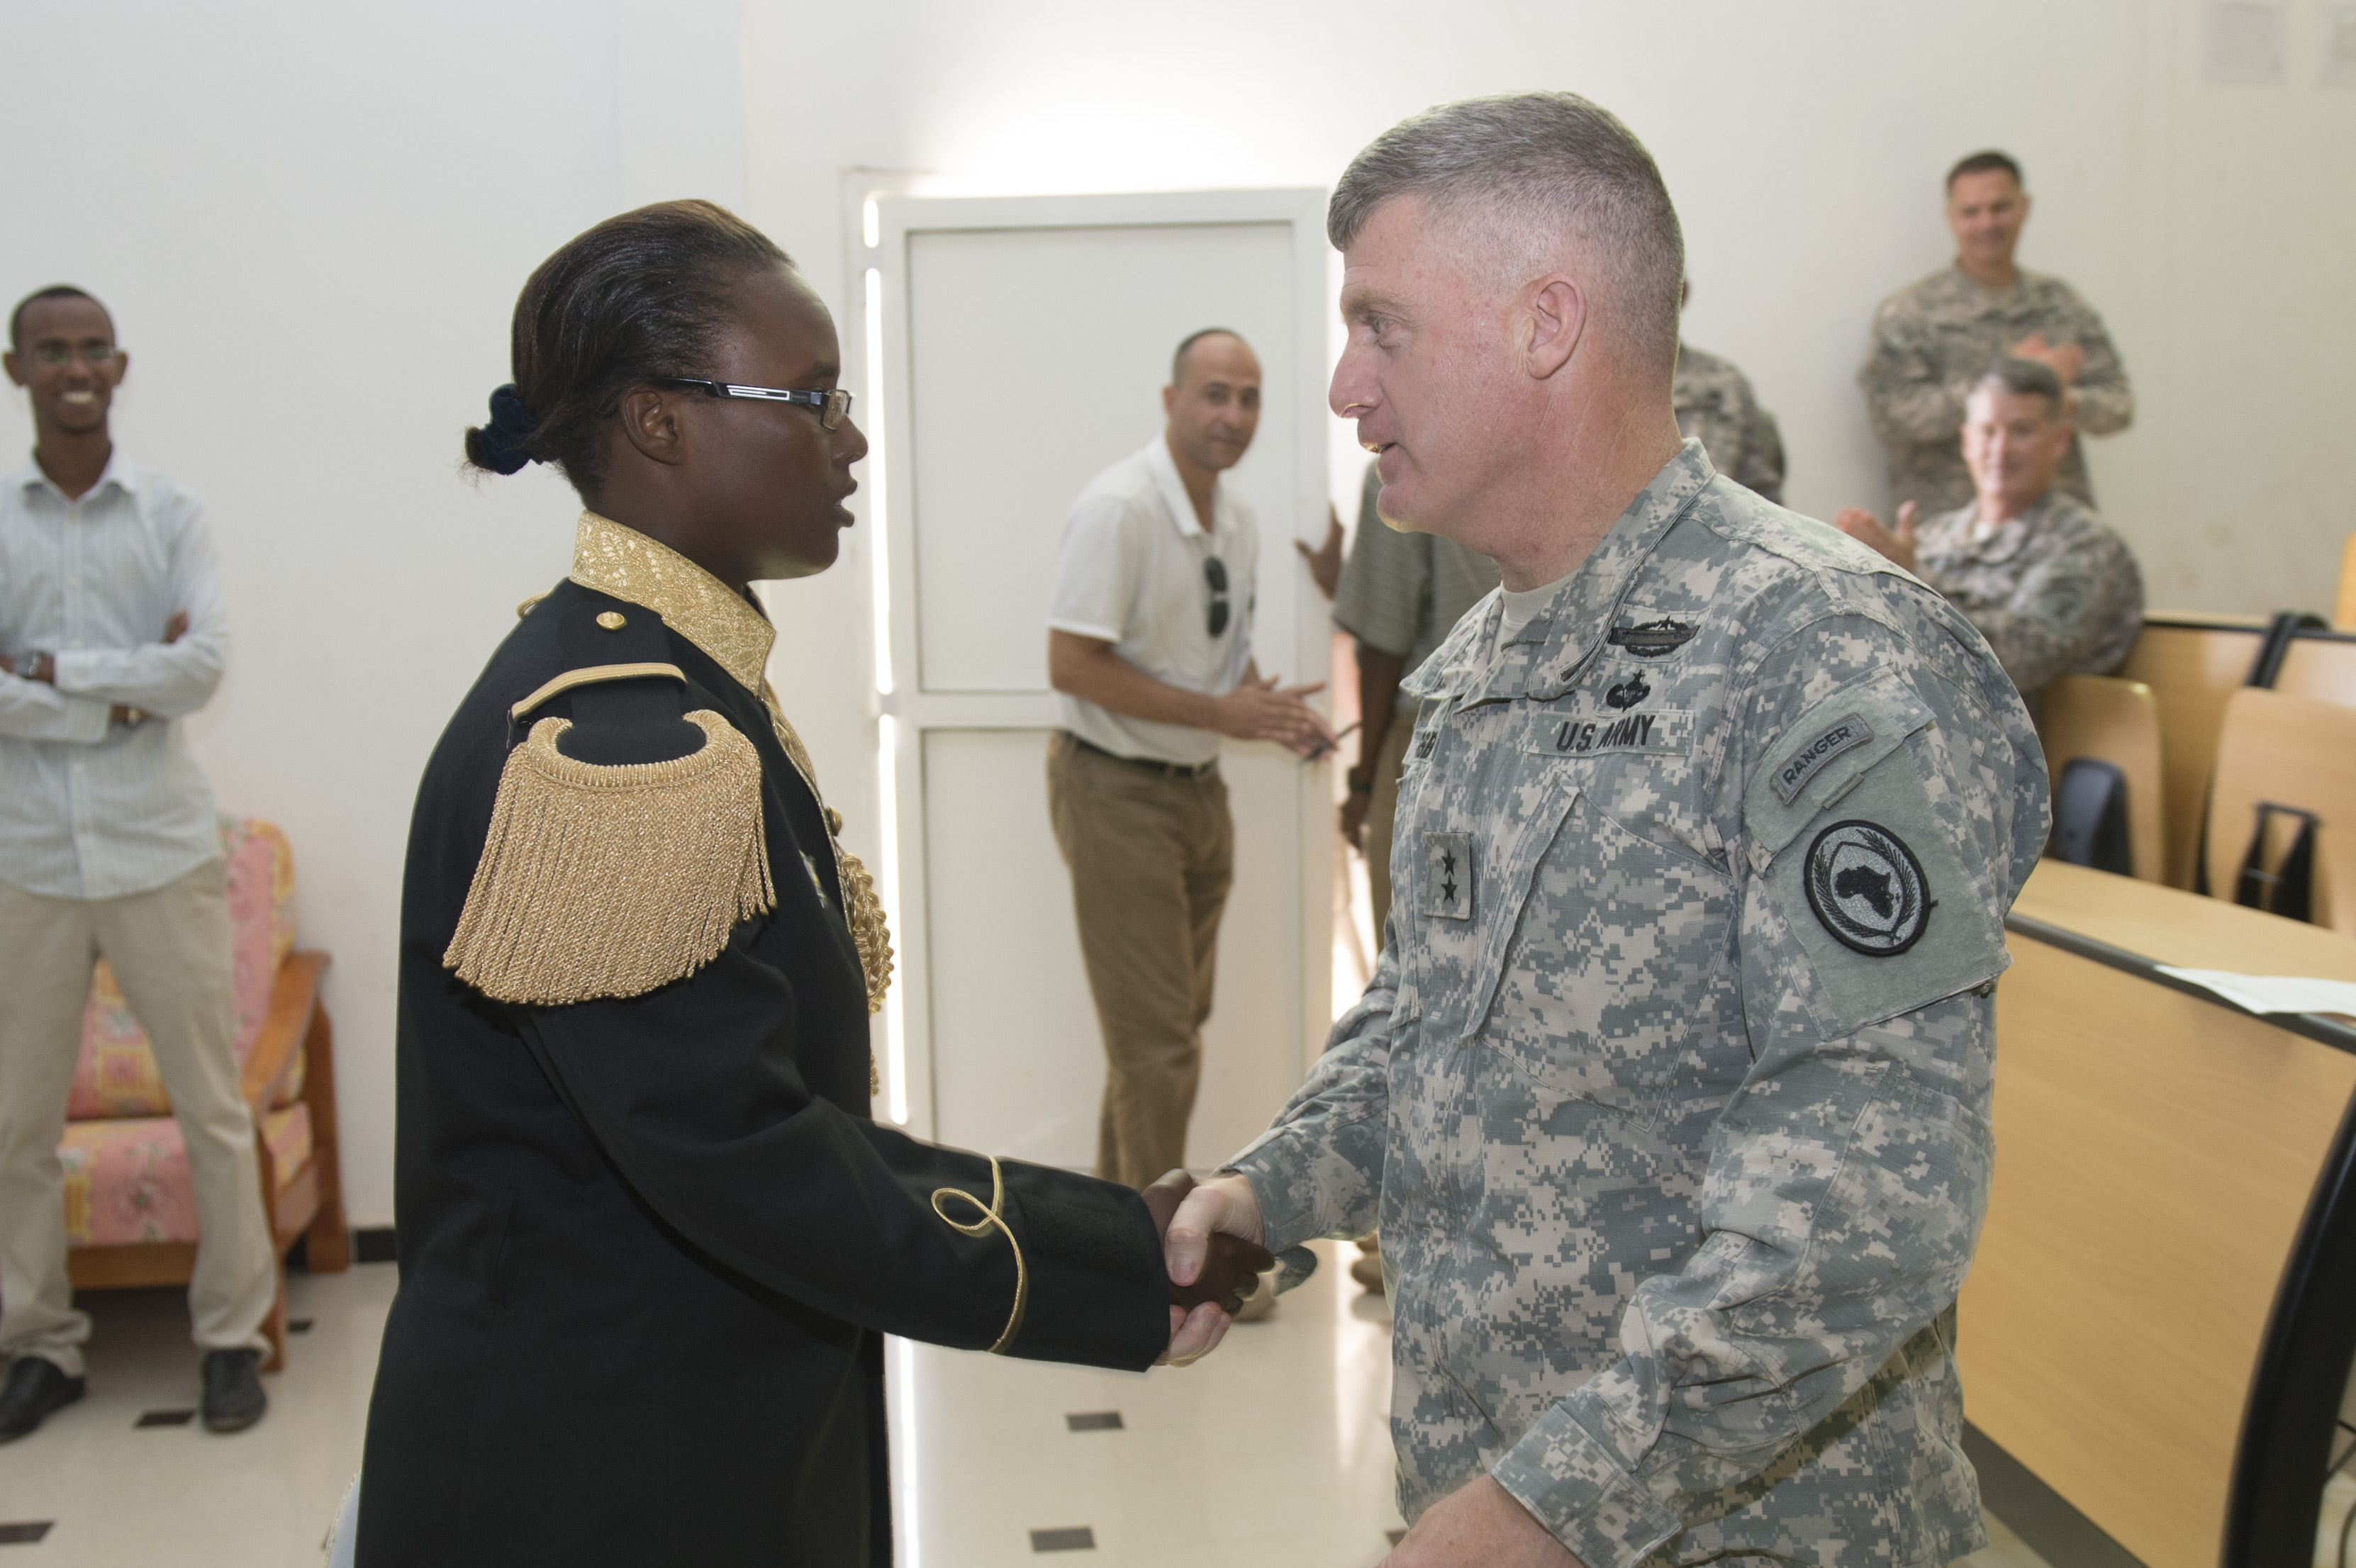 Maj. Gen. Wayne W. Grigsby, Jr., Combined Joint Task Force-Horn of Africa commanding general, meets with a Djiboutian cadet during a visit to Joint Military Academy of Arta in Arta, Djibouti on Dec. 27, 2014. AS CJTF-HOA commanding general, Grigsby mentored junior members at Partner Nation military academies. (U.S. Air Force photo by Staff Sgt. Carlin Leslie)